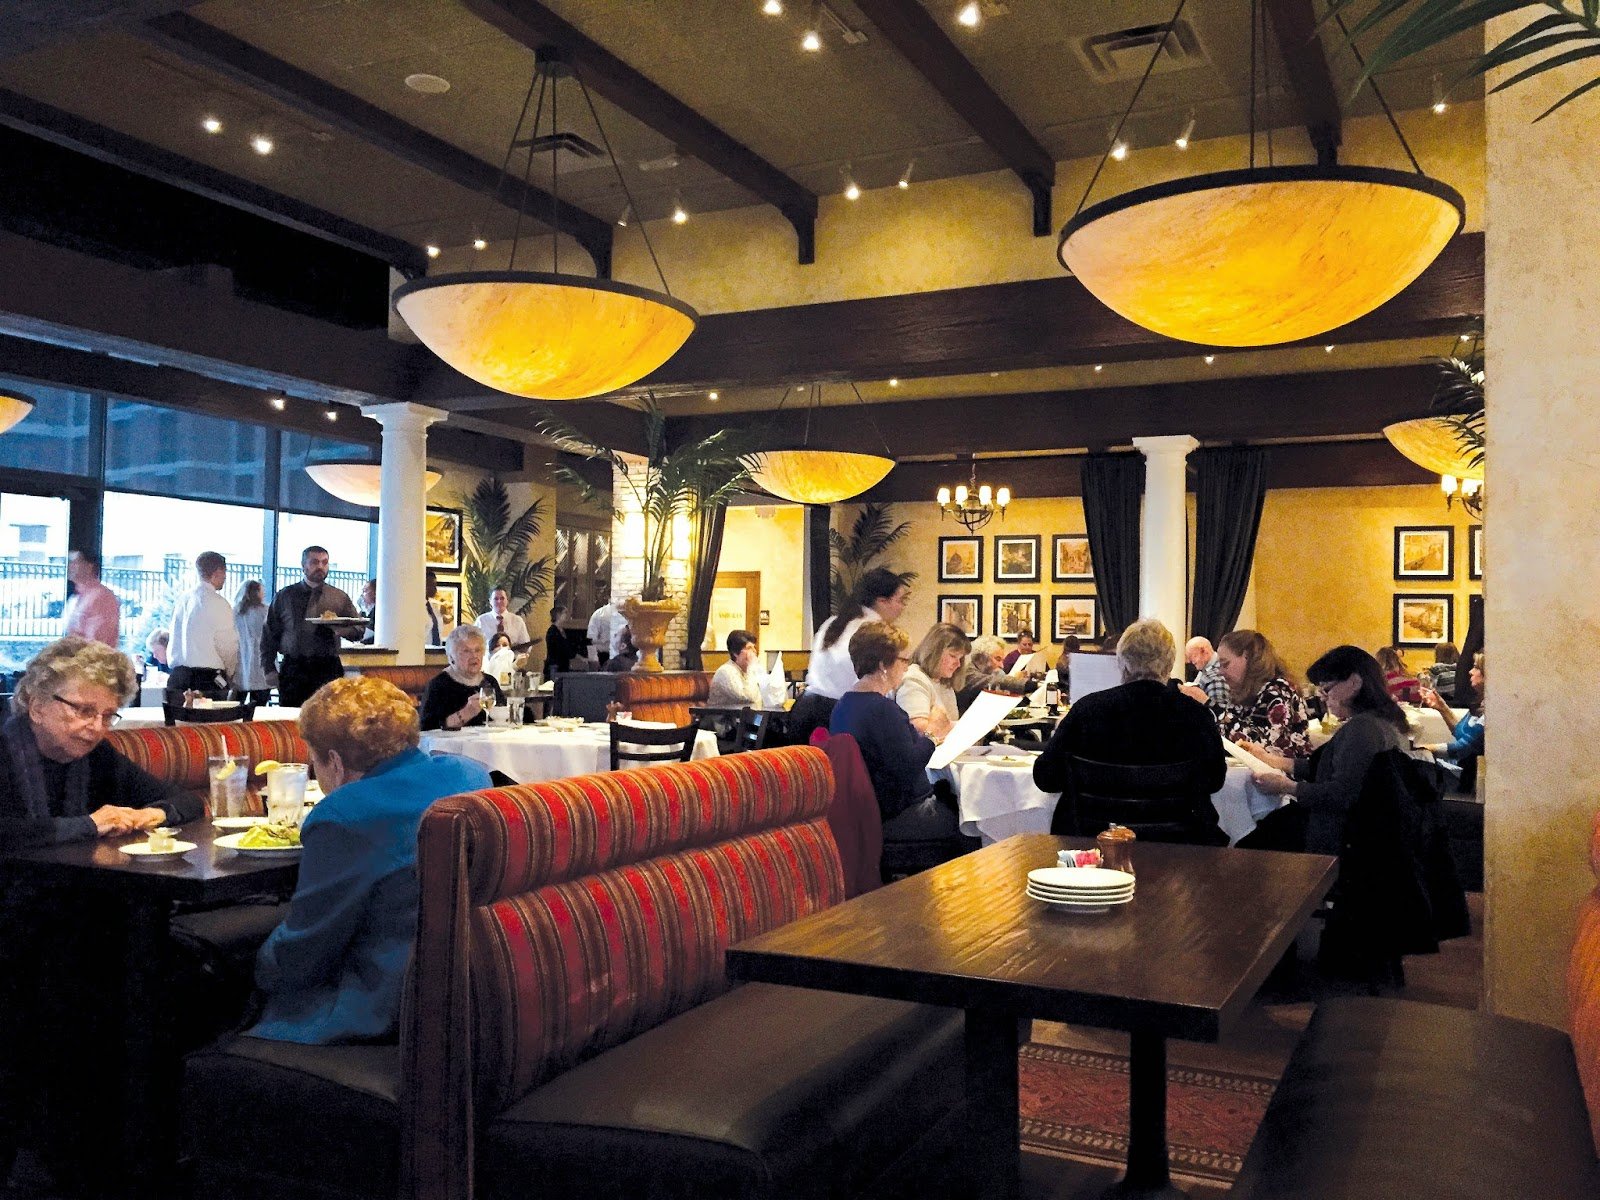 Cucina Italiana New Hope Entertaining Views From Cincinnati Bravo Cucina Italiana At Rookwood